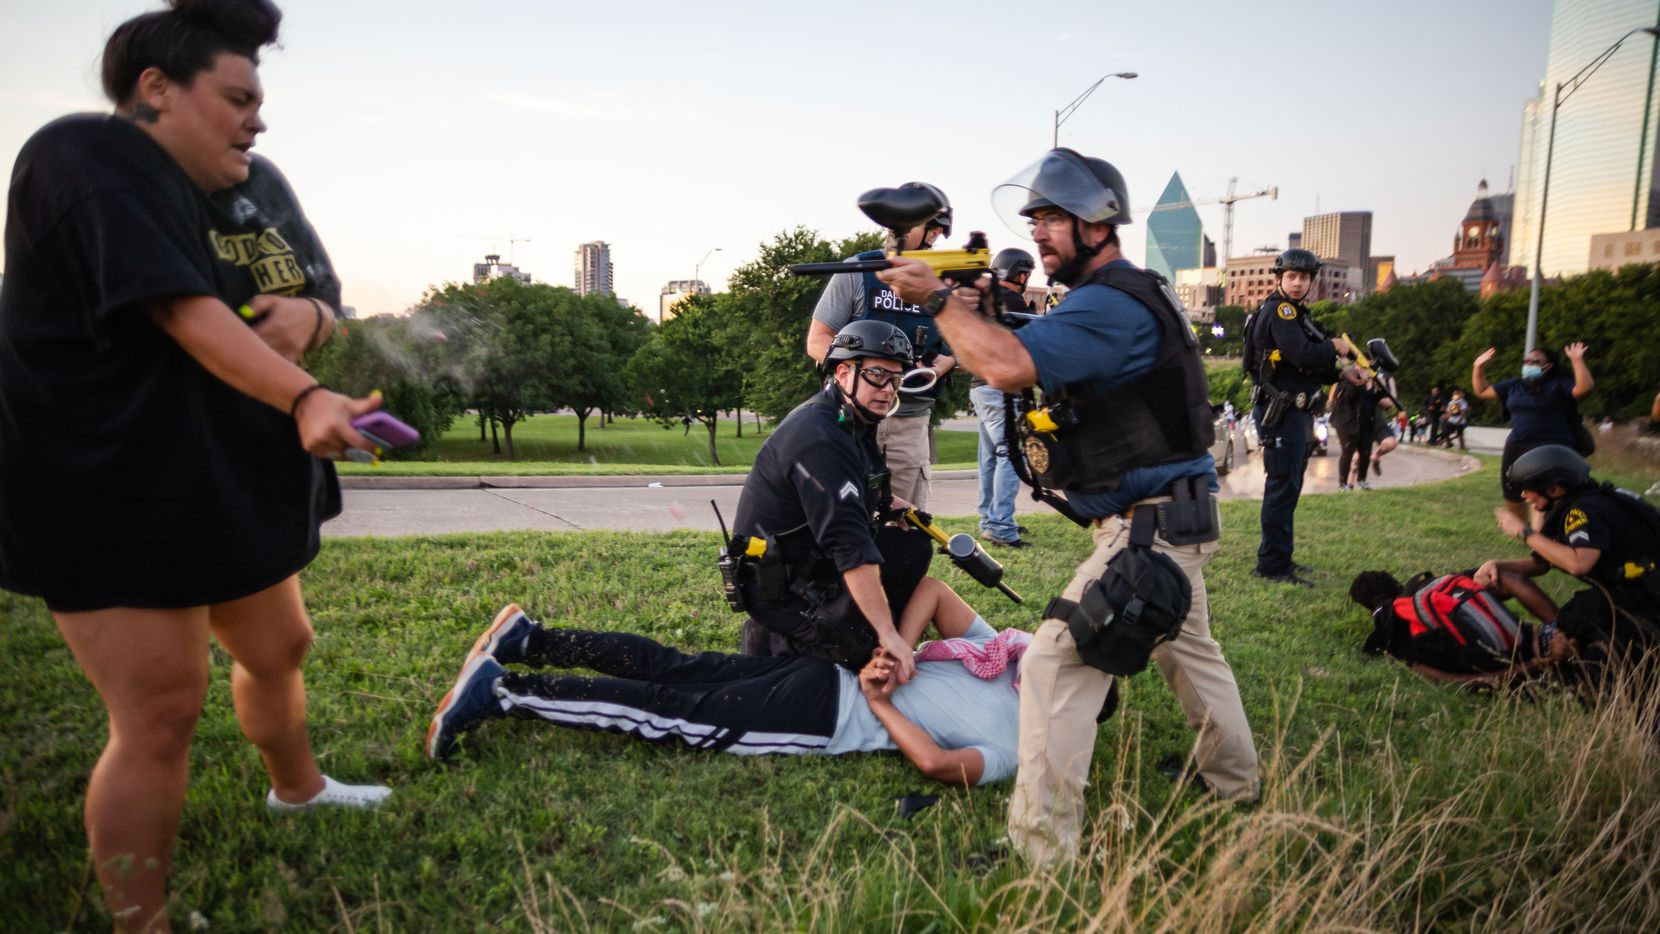 Dallas police Sgt. Roger Rudloff fires pepper balls at a protester standing only a few feet away. The incident occurred just before dusk on May 30 during protests in downtown Dallas sparked by George Floyd's death five days earlier.